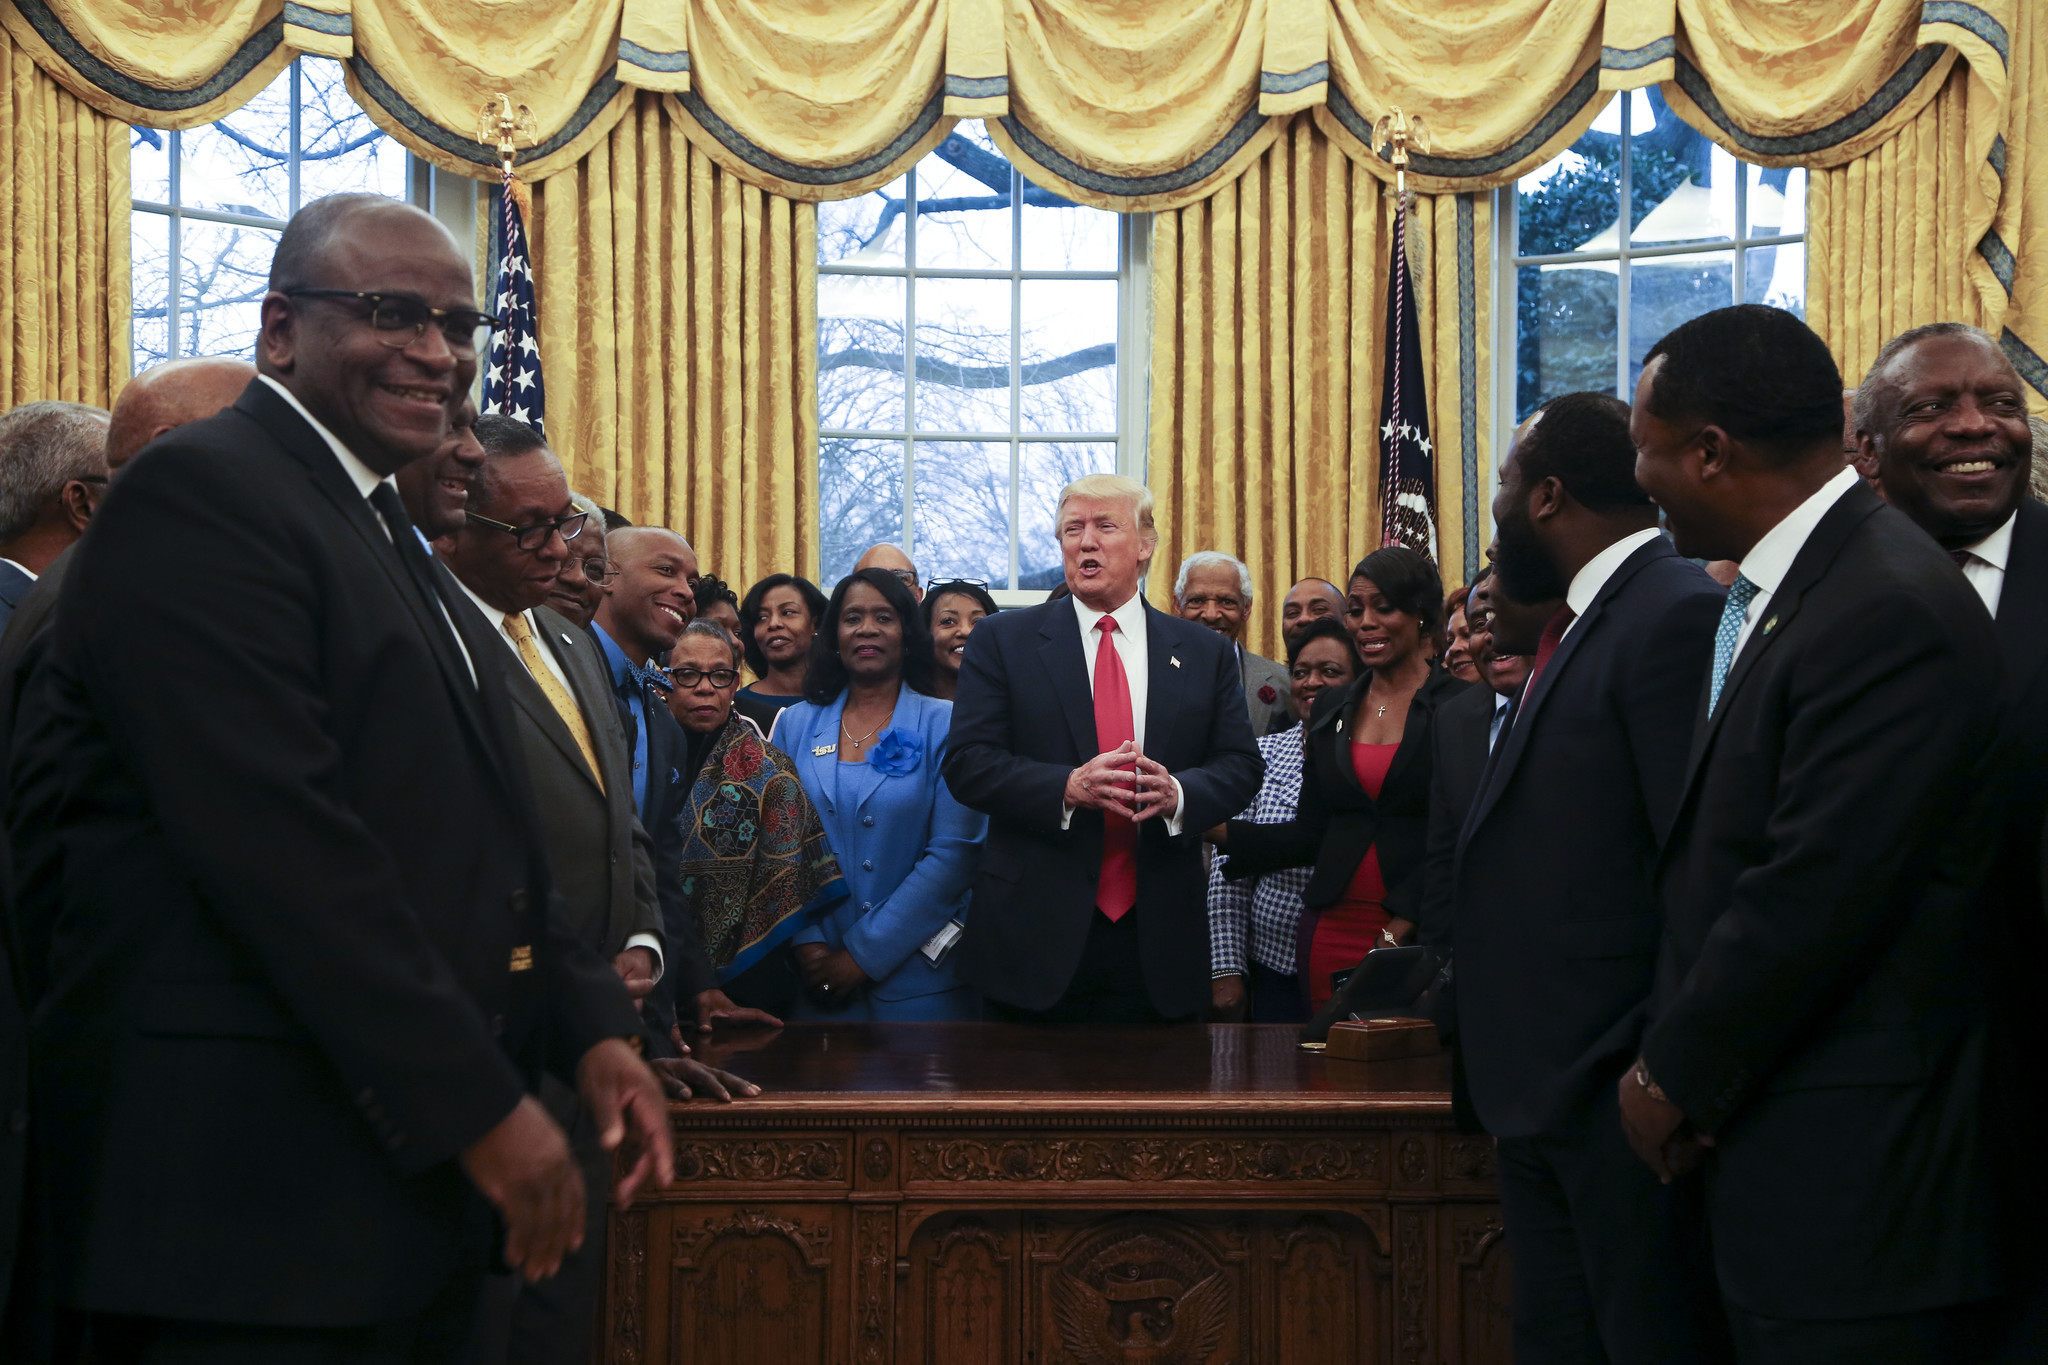 Trump Faces Questions Over His Promise To Historically Black Colleges